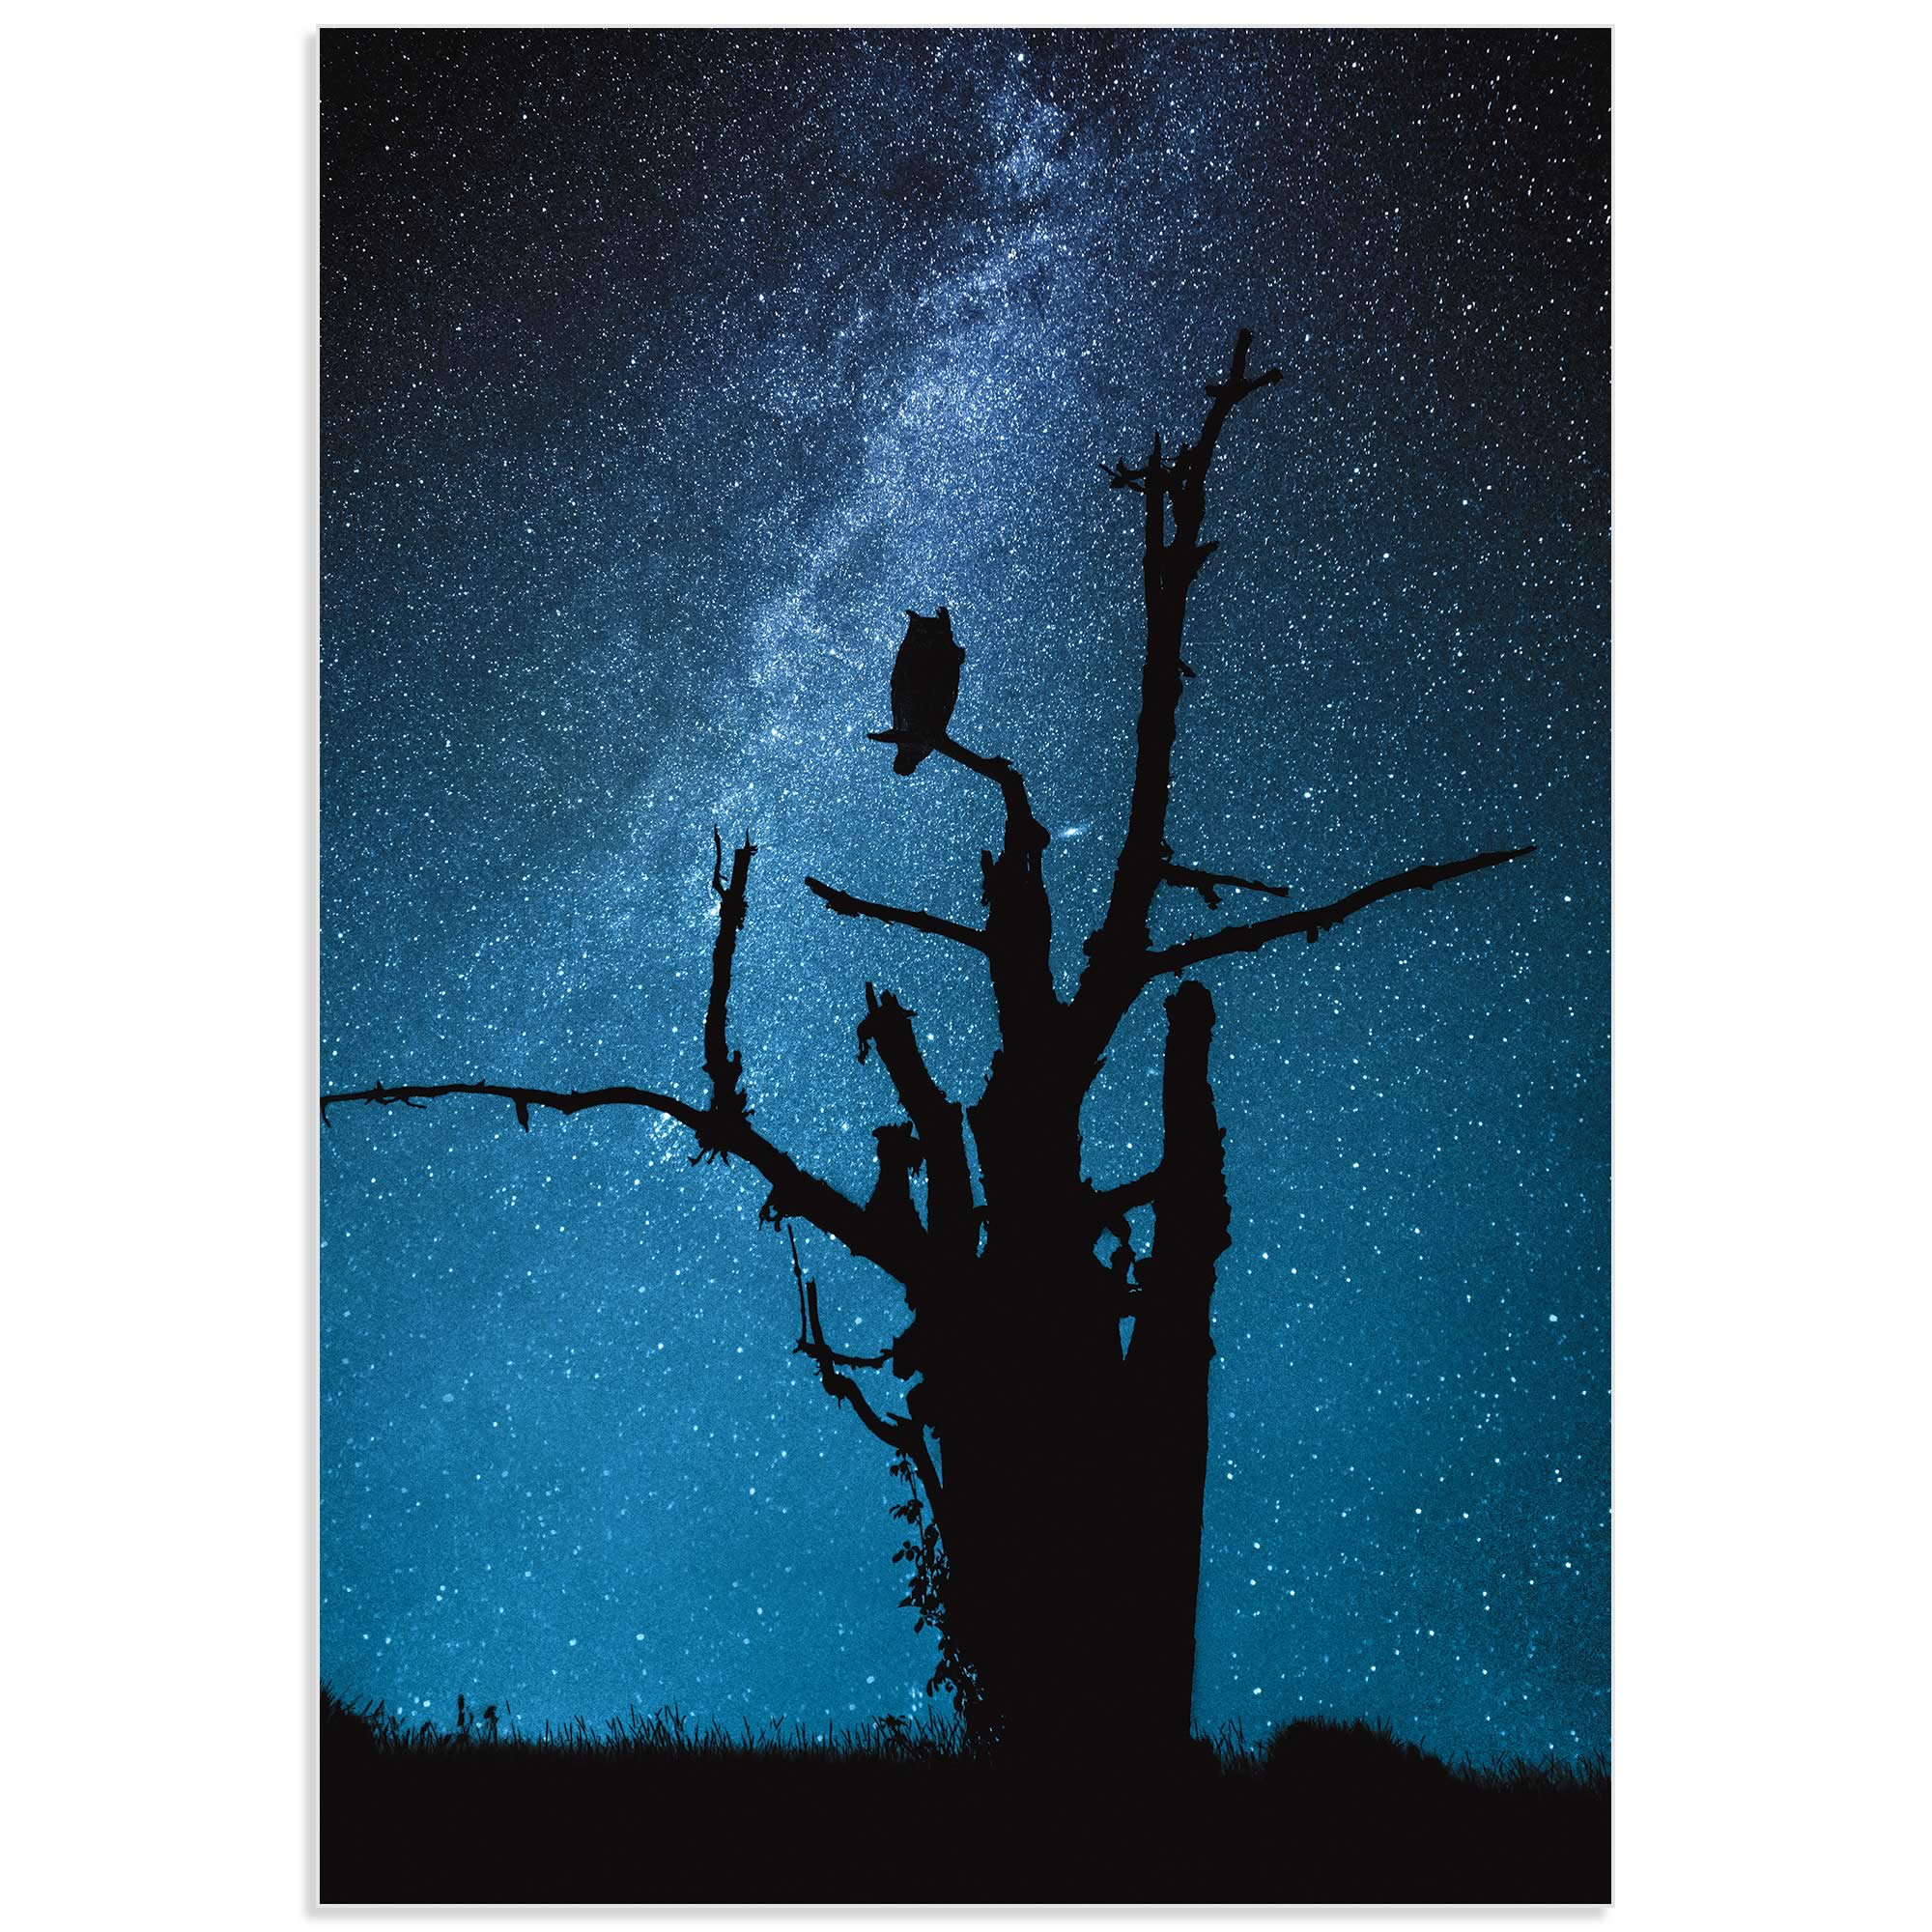 Alone in the Dark by Manu Allicot - Owl Wall Art on Metal or Acrylic - Alternate View 2